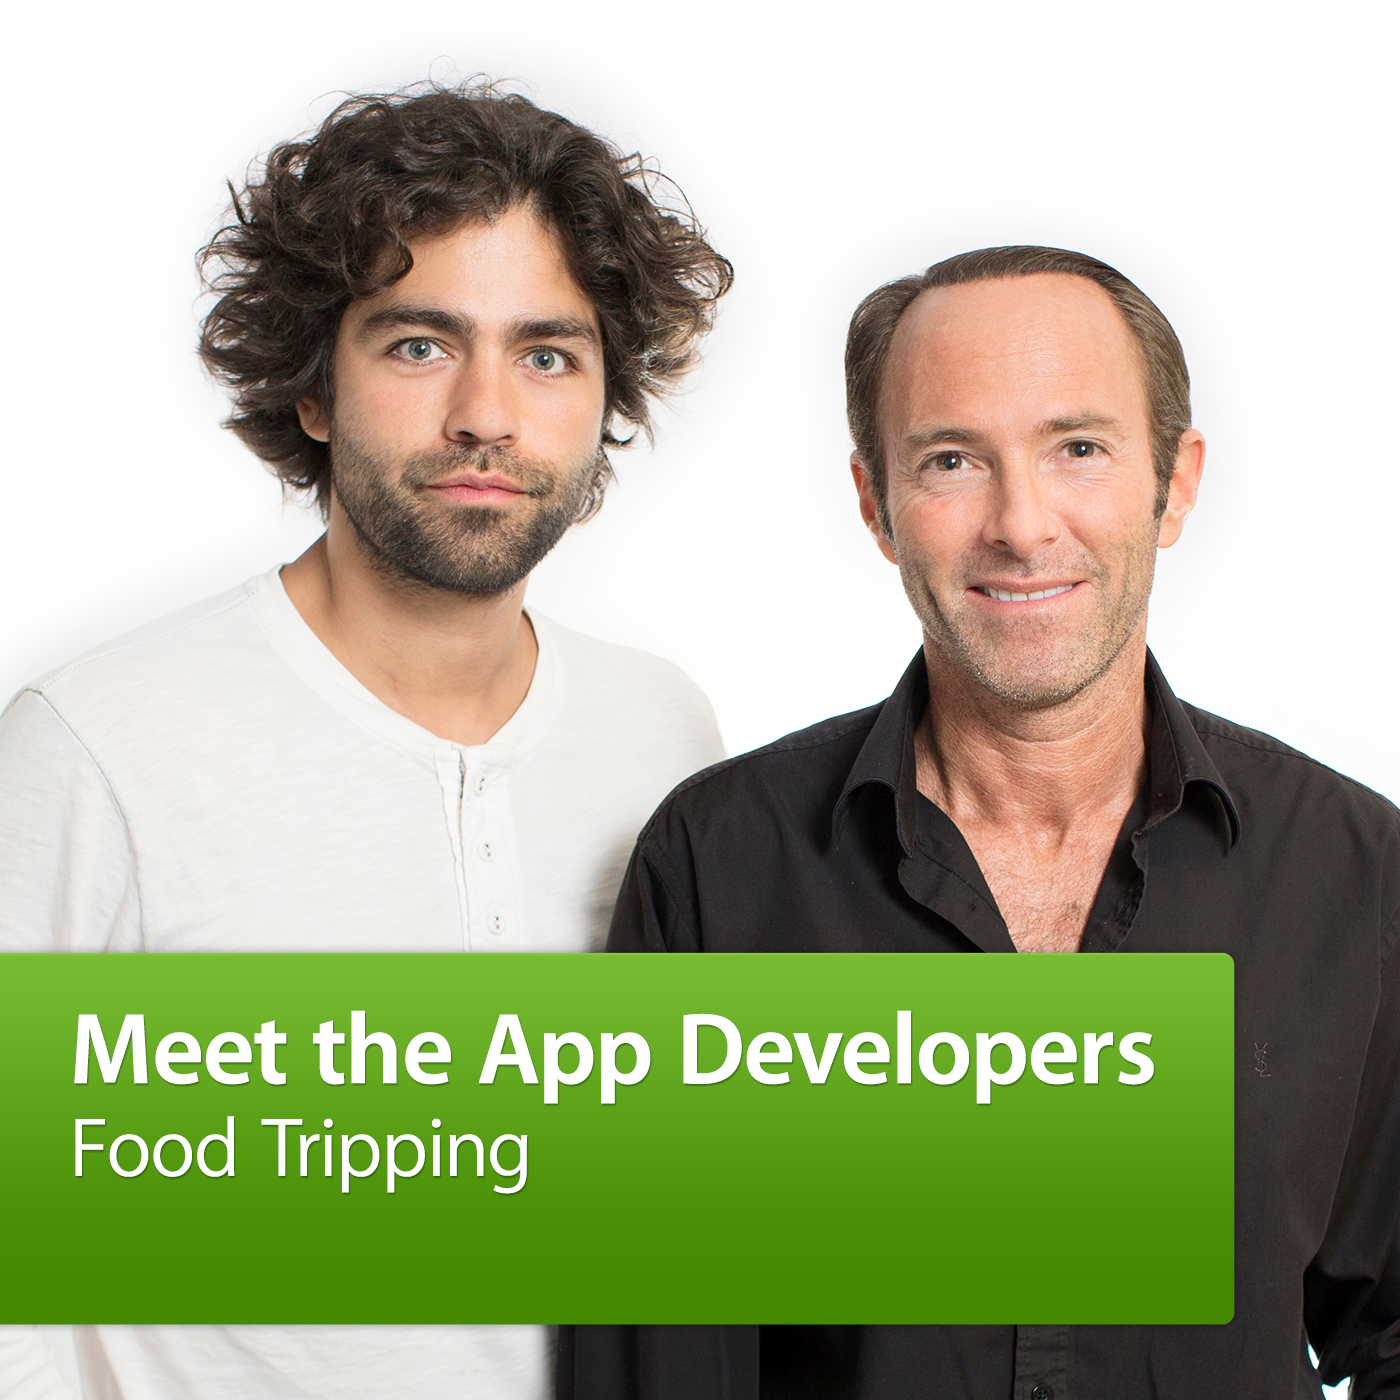 Food Tripping: Meet the App Developers